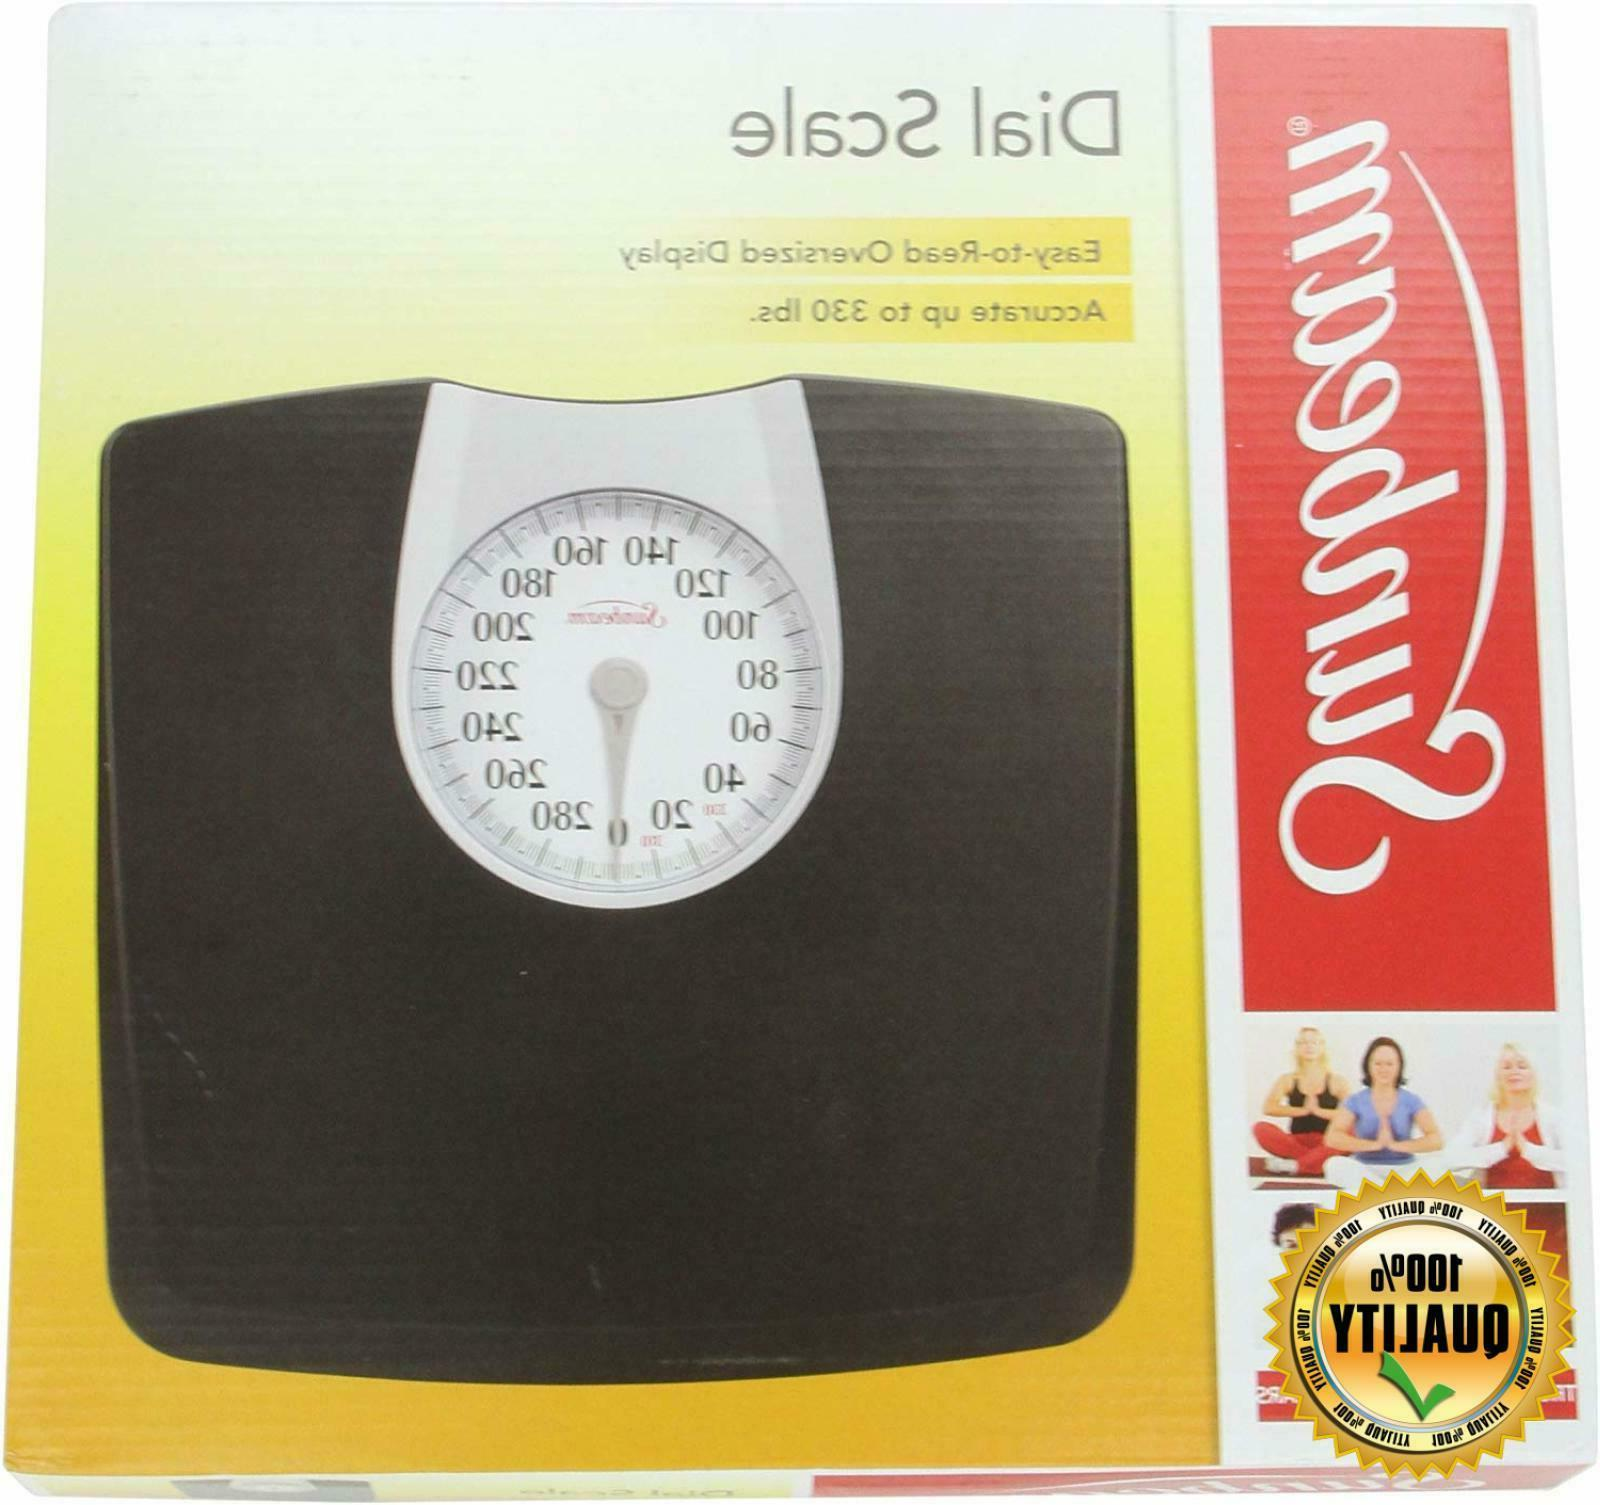 "Sunbeam SAB602-05 Full View Dial Scale Easy-to-read 4.4"" Dia"